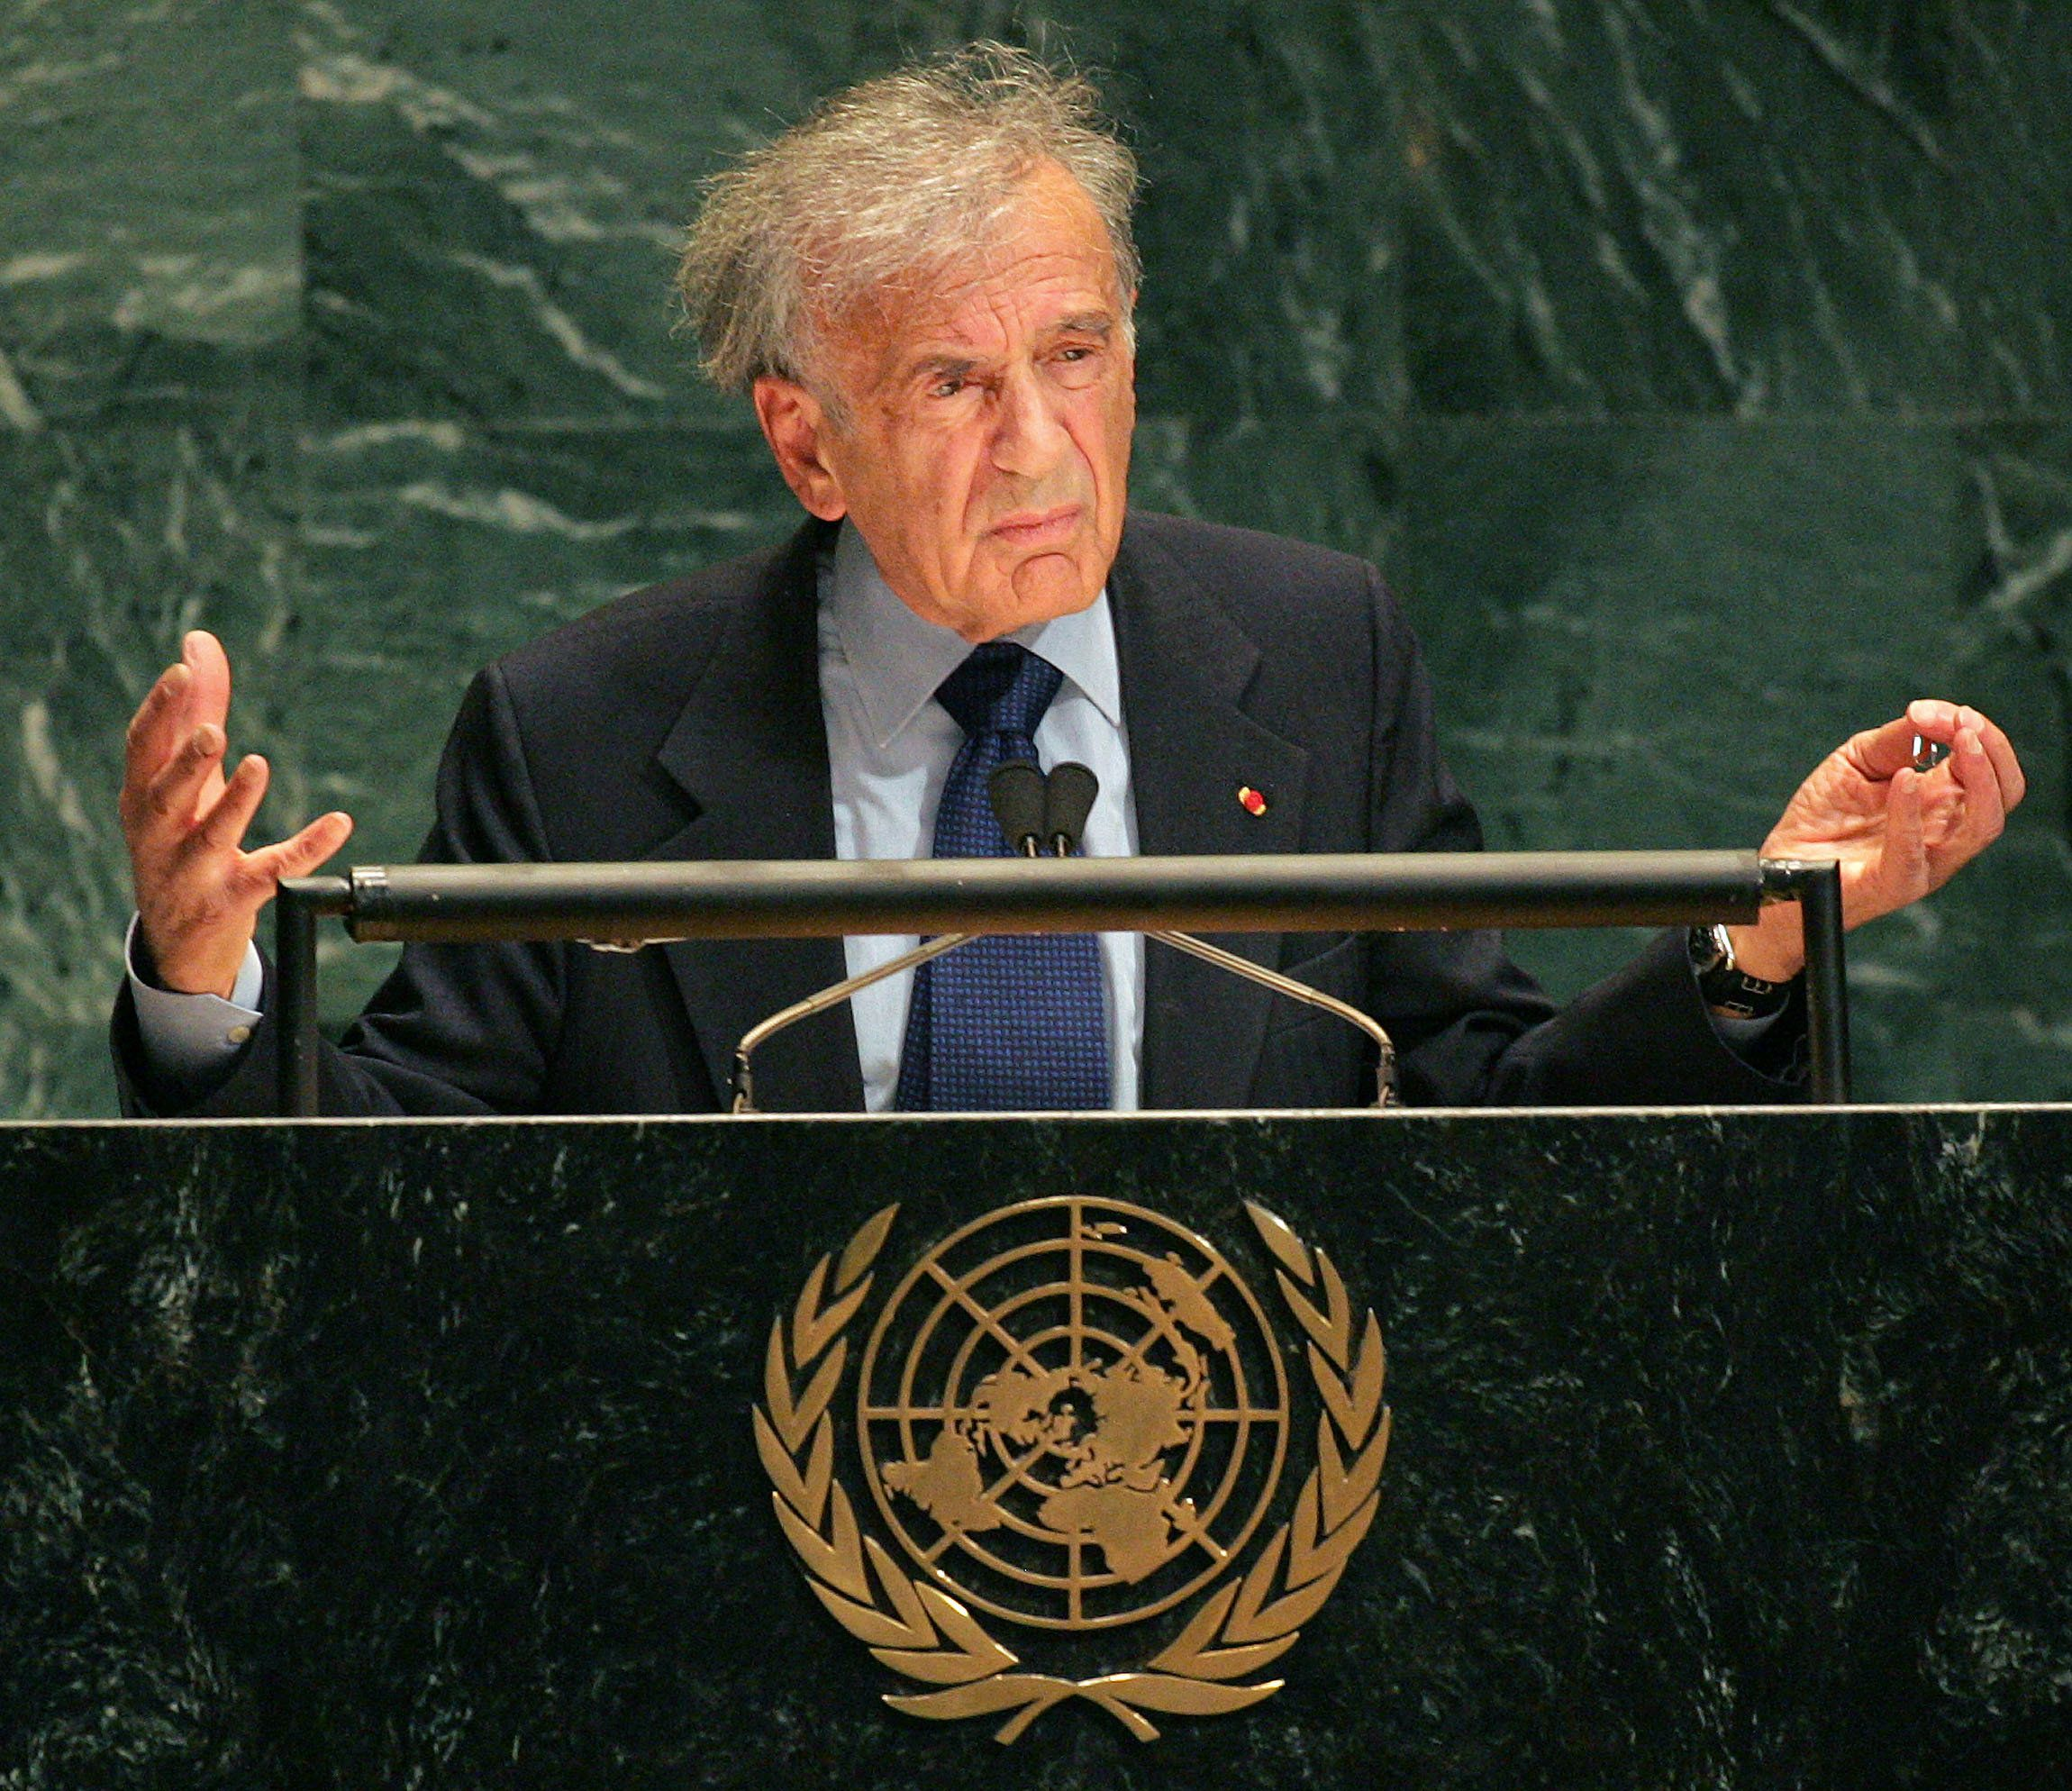 Nobel Prize winner and Holocaust survivor Elie Wiesel speaks at a special session of the United Nations General Assembly in N